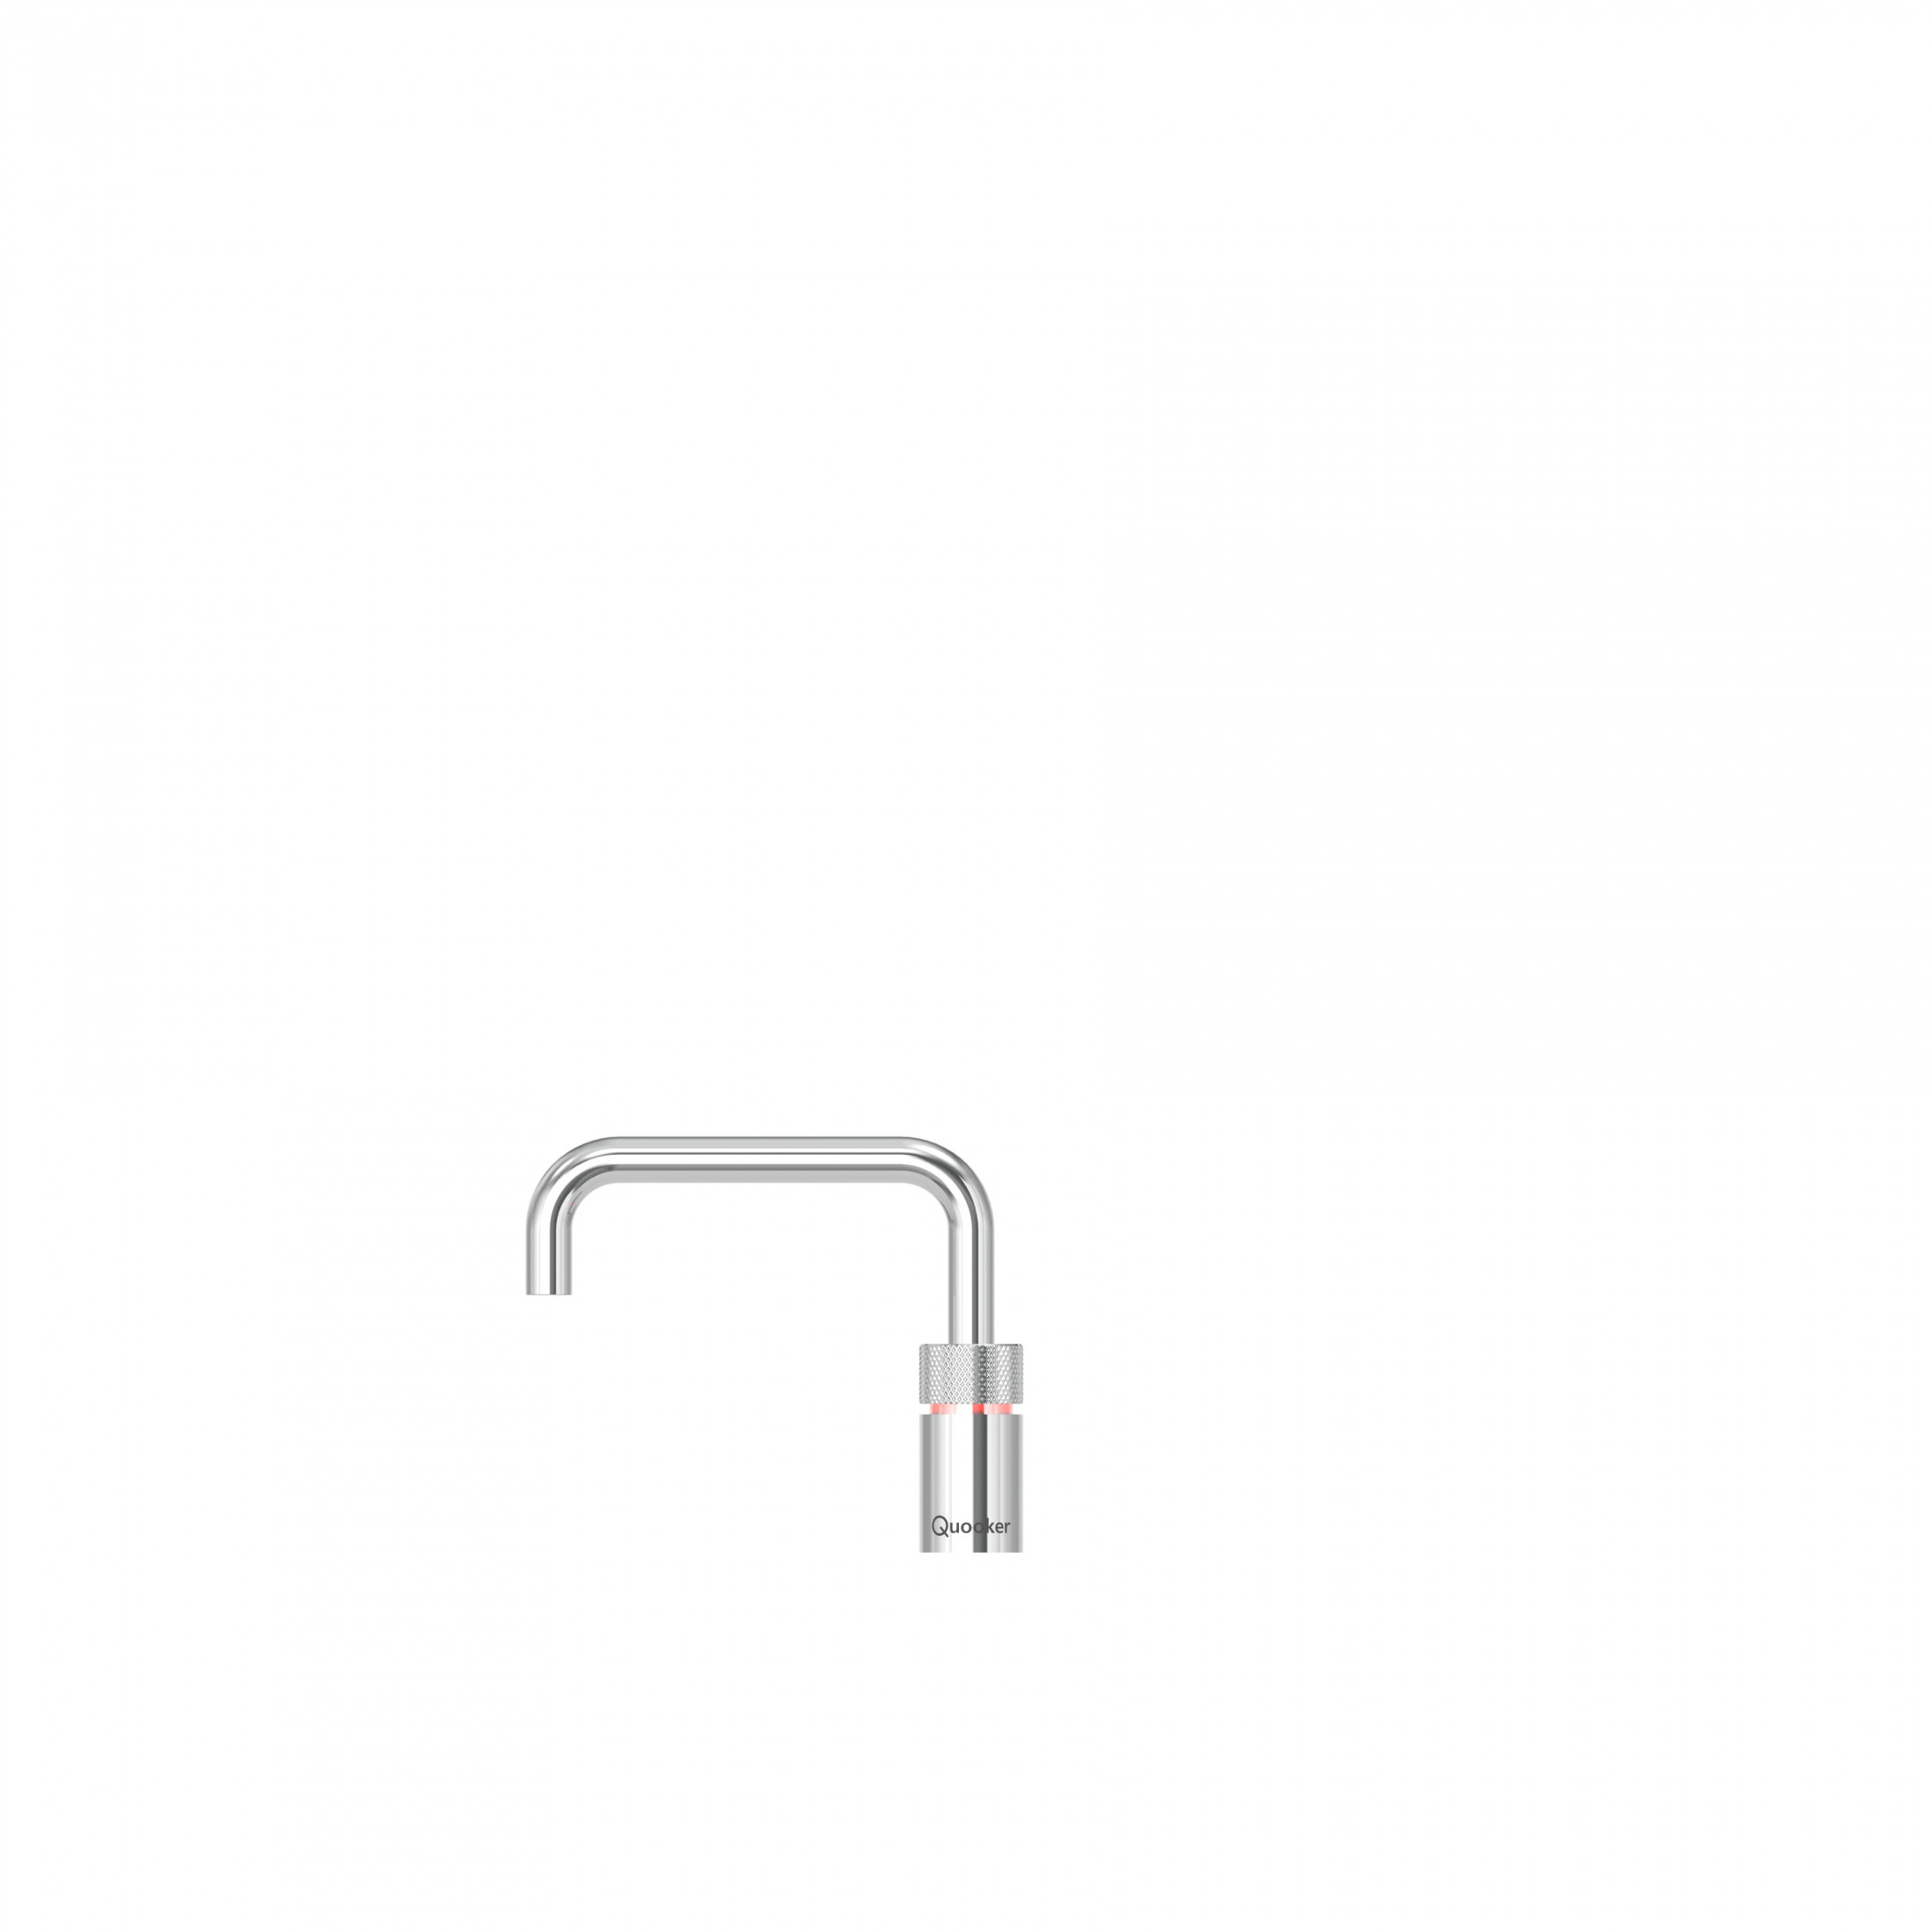 Quooker Nordic Square Instant Boiling Water Kitchen Tap 3NSCHR